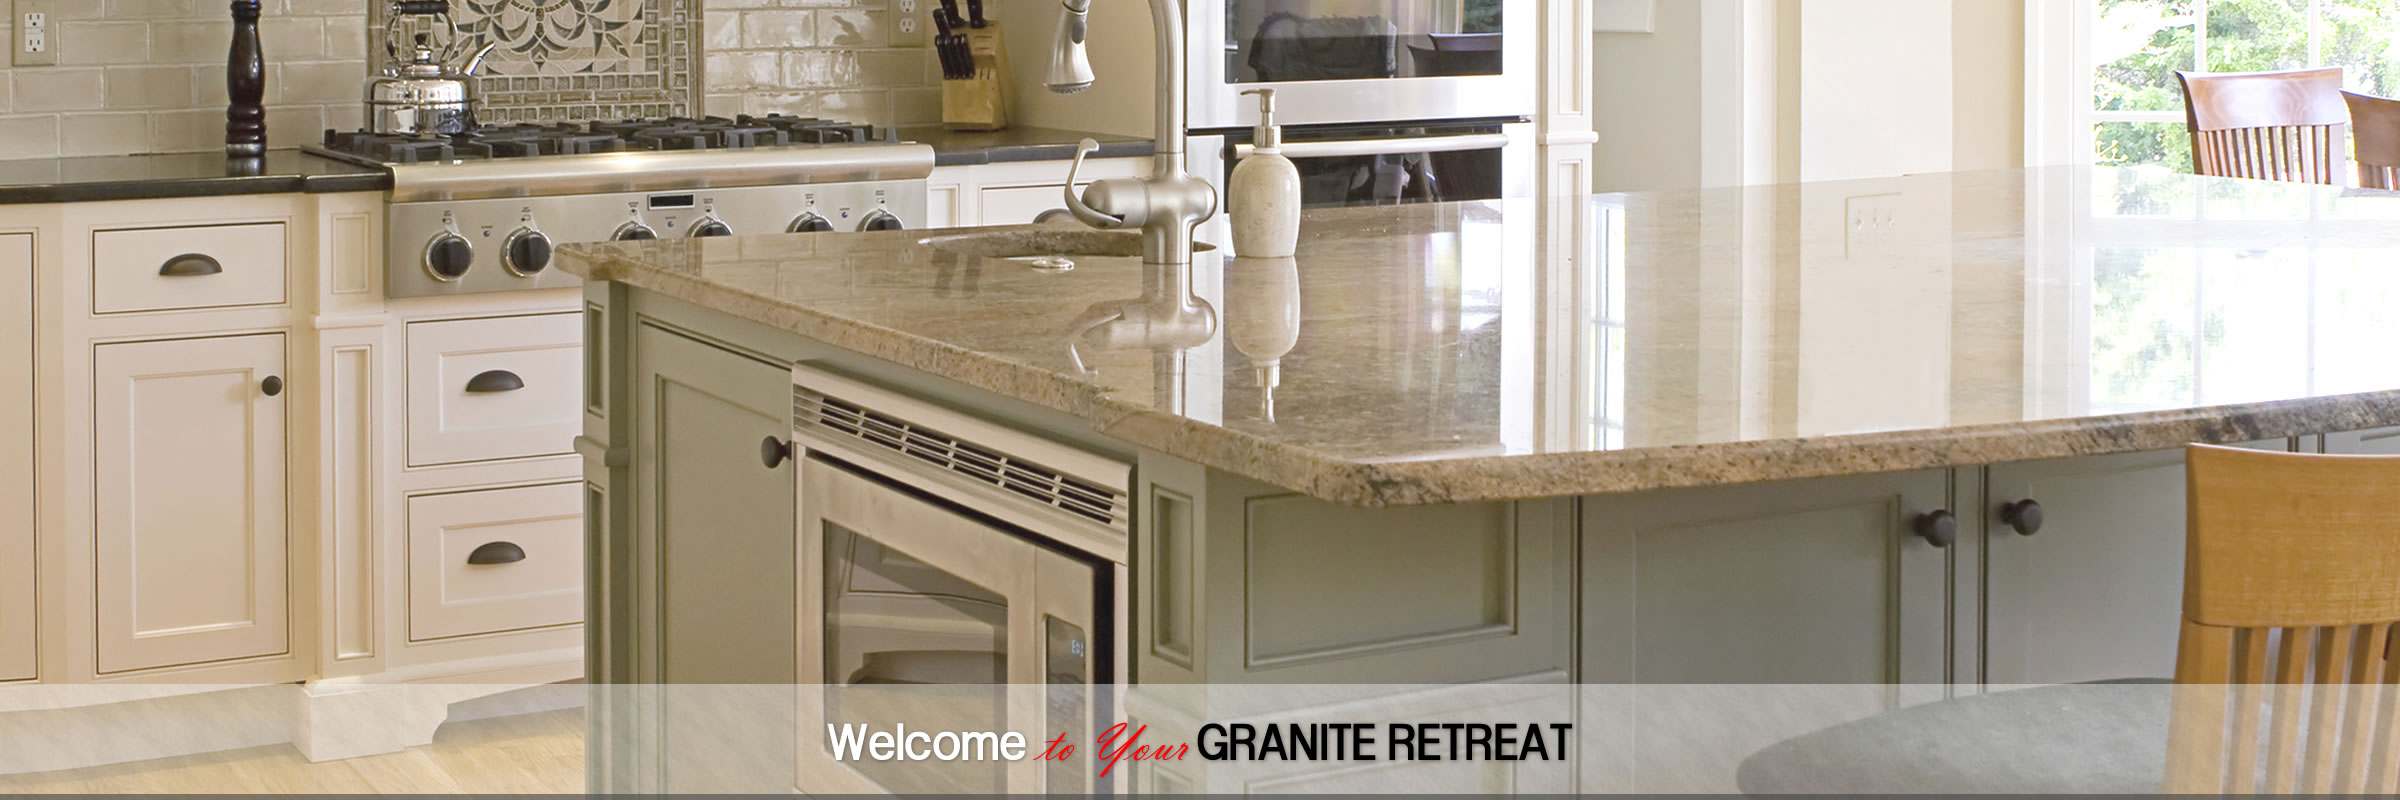 slide llc granite york countertops jersey granit quality new countertop first